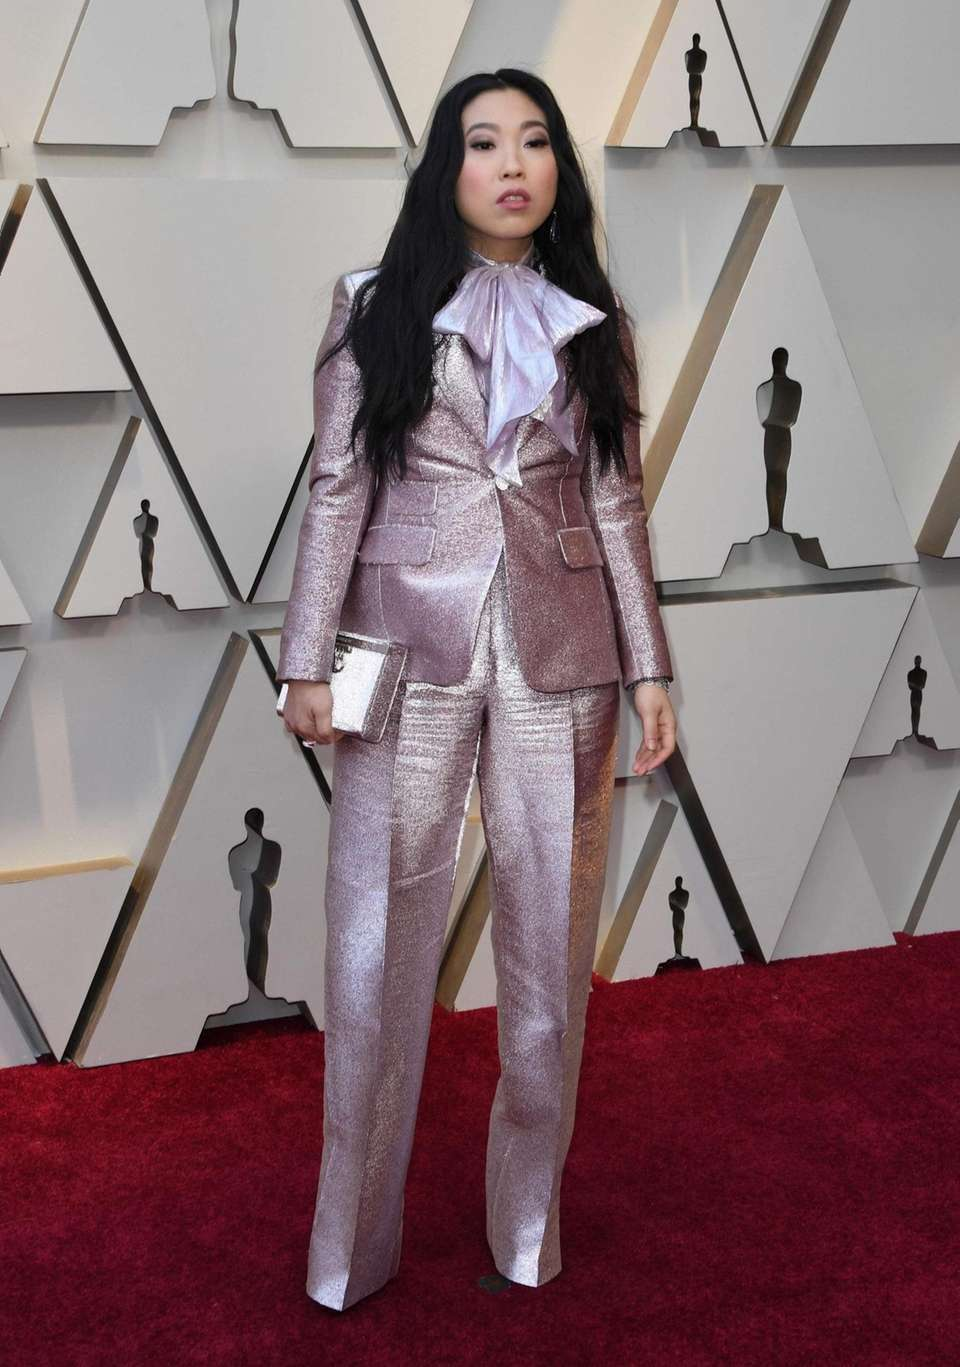 Actress/singer Awkwafina arrives for the 91st Annual Academy